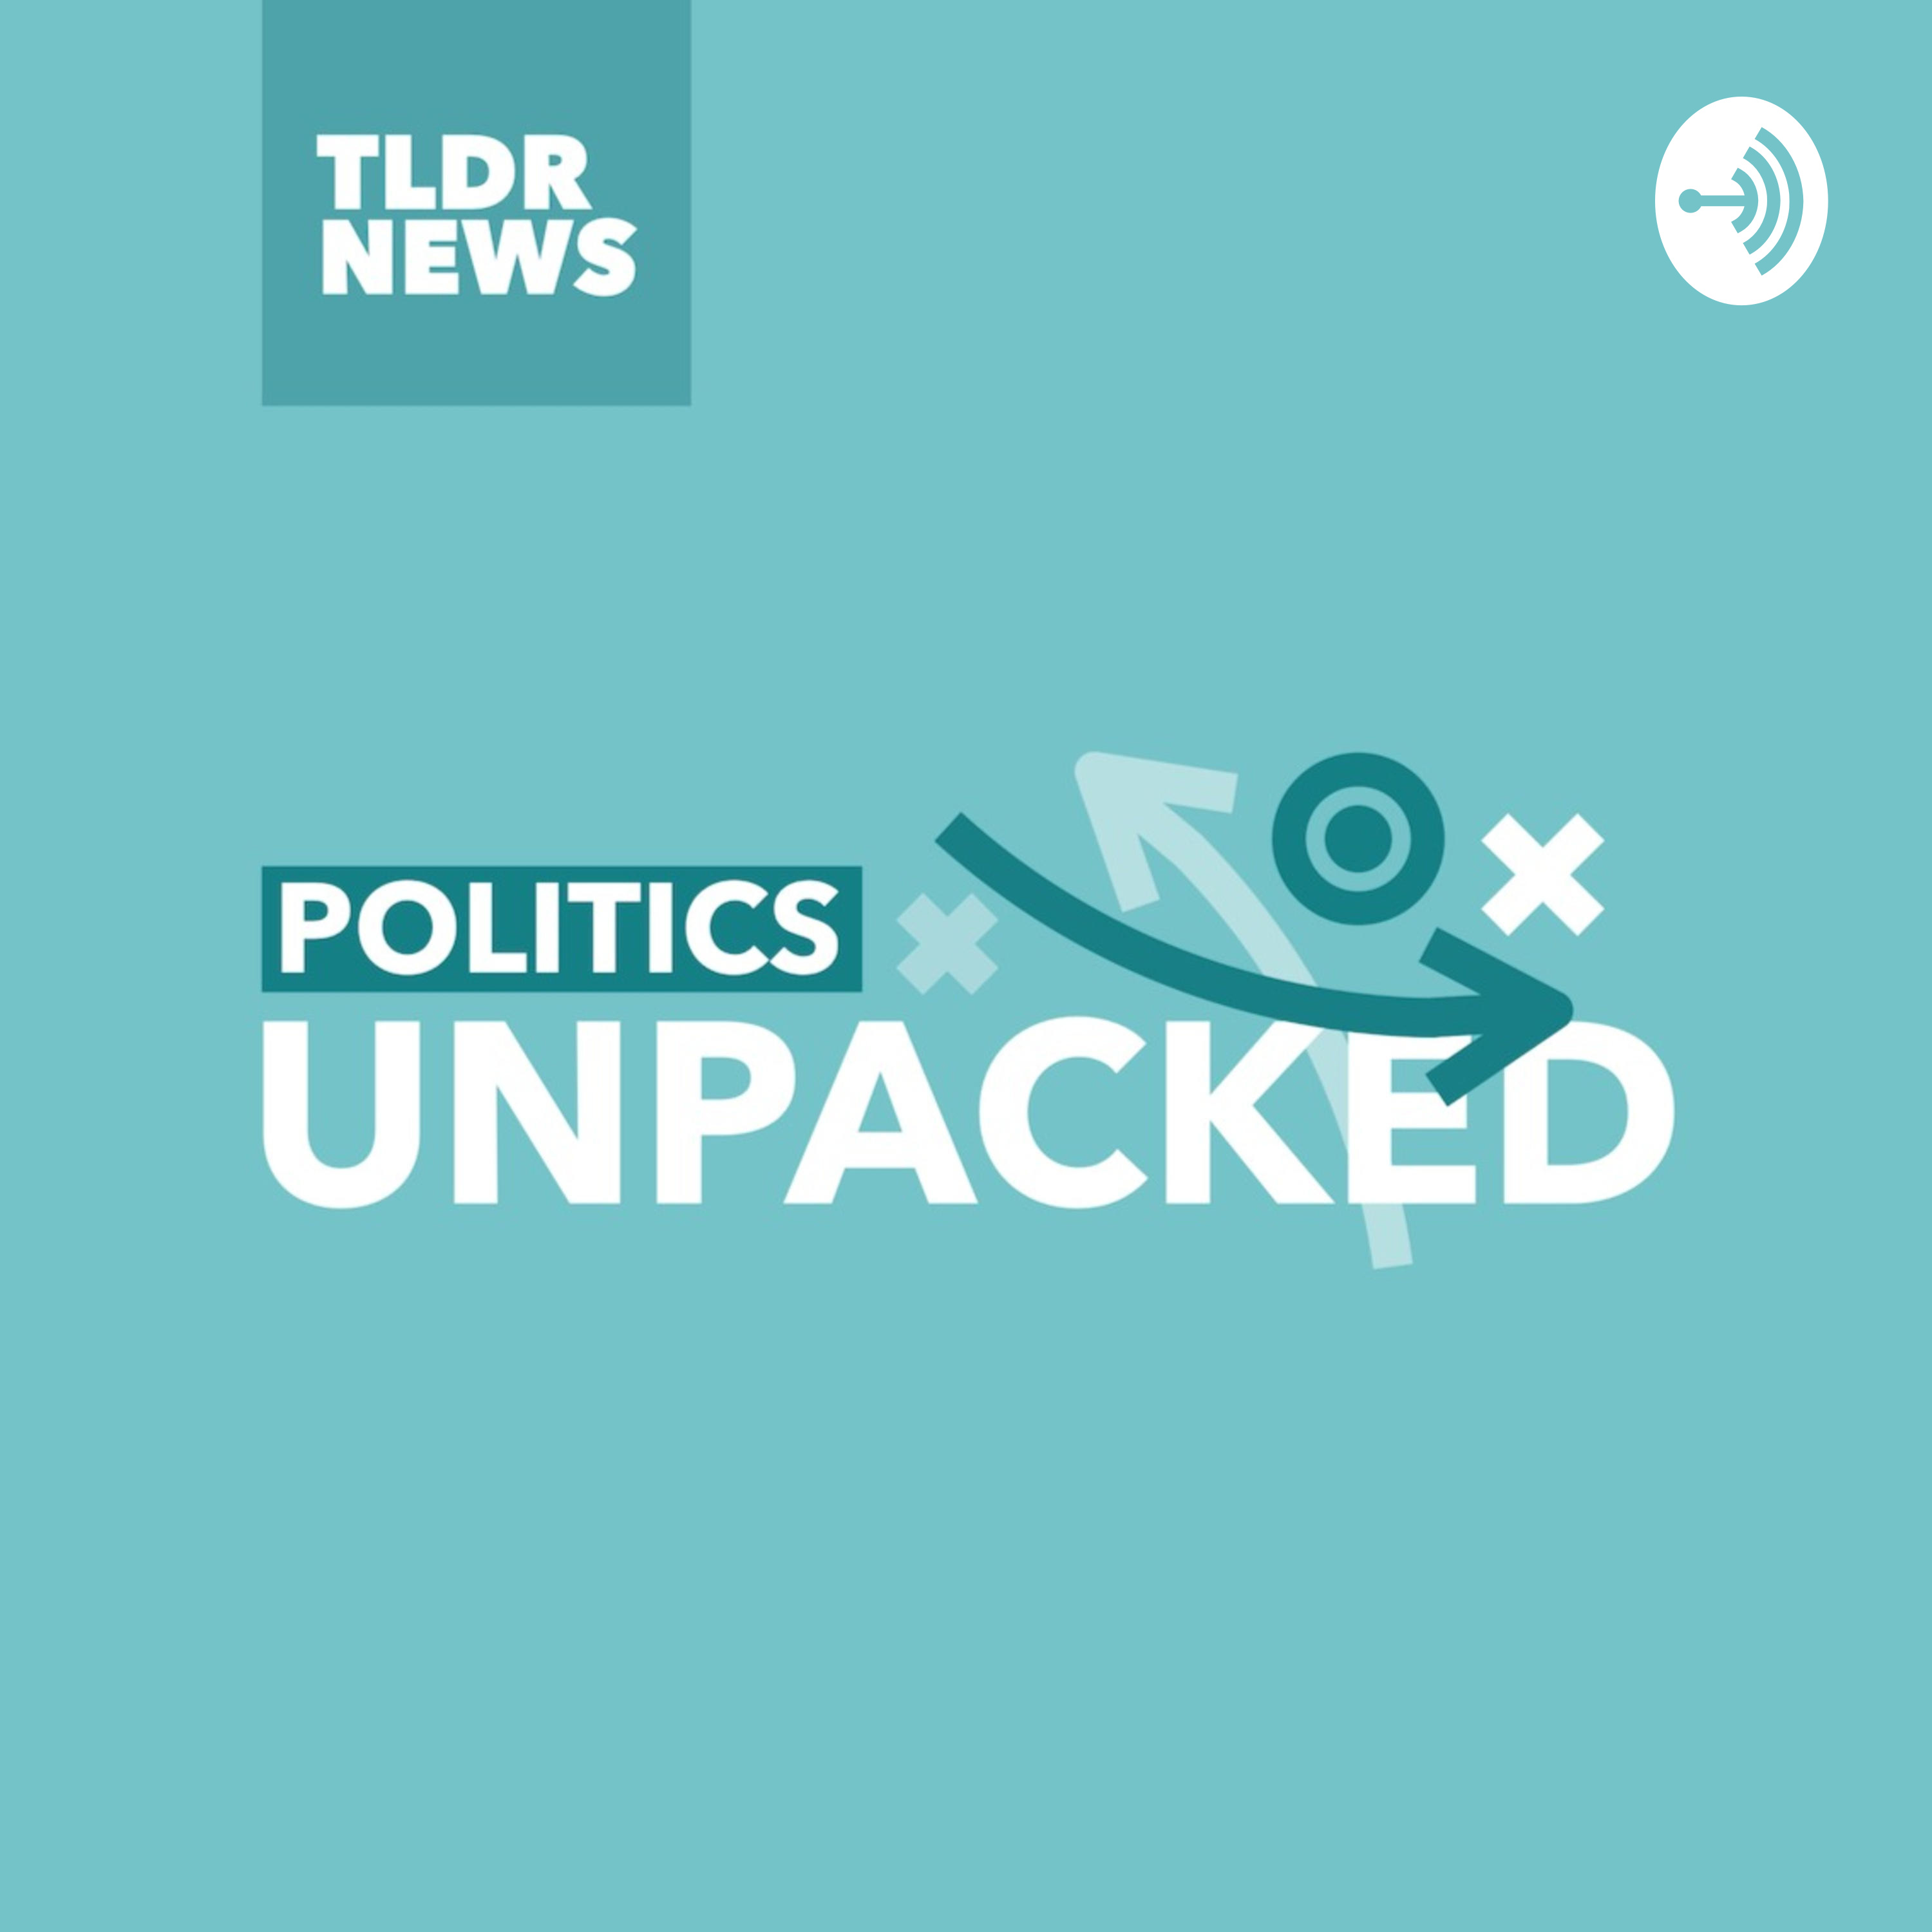 Politics Unpacked from TLDR News channel image